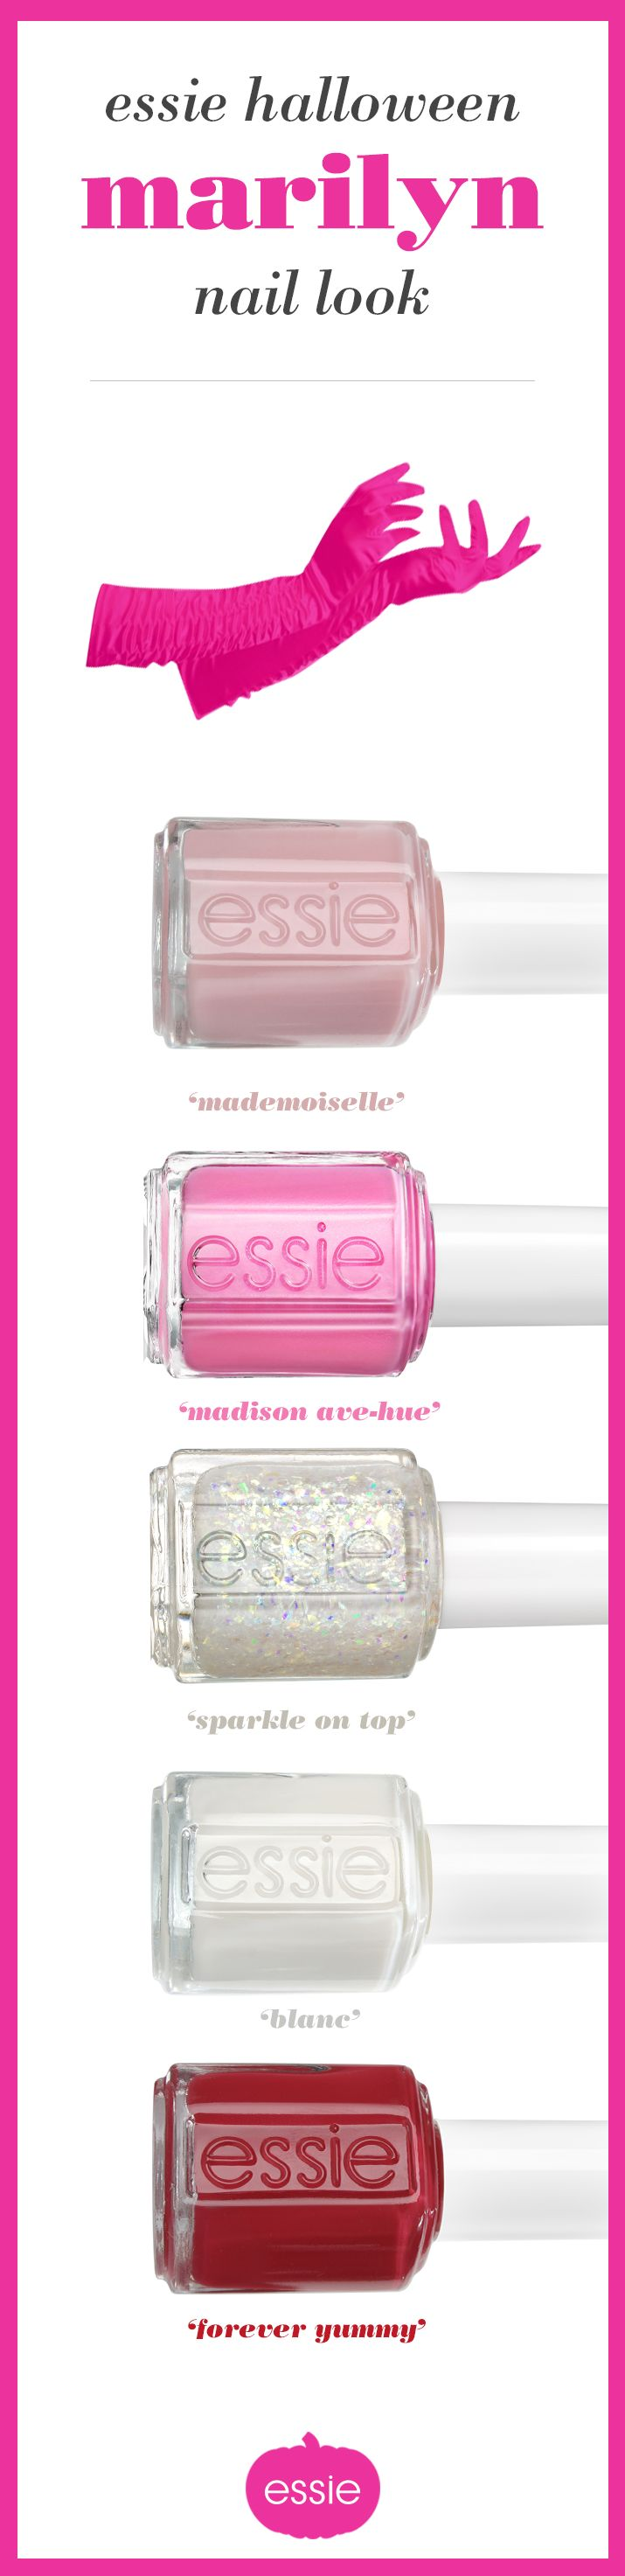 A girl in a glamorous mood knows her nail polish must follow through. Get into the sophistication of 'mademoiselle', the seduction of 'madison ave-hue', the dazzle of 'sparkle on top', the serenity of 'blanc', or the vivaciousness of 'forever yummy'. Tonight is your premiere; make an entrance like a 1950's Hollywood celebrity in these fabulous essie shades.